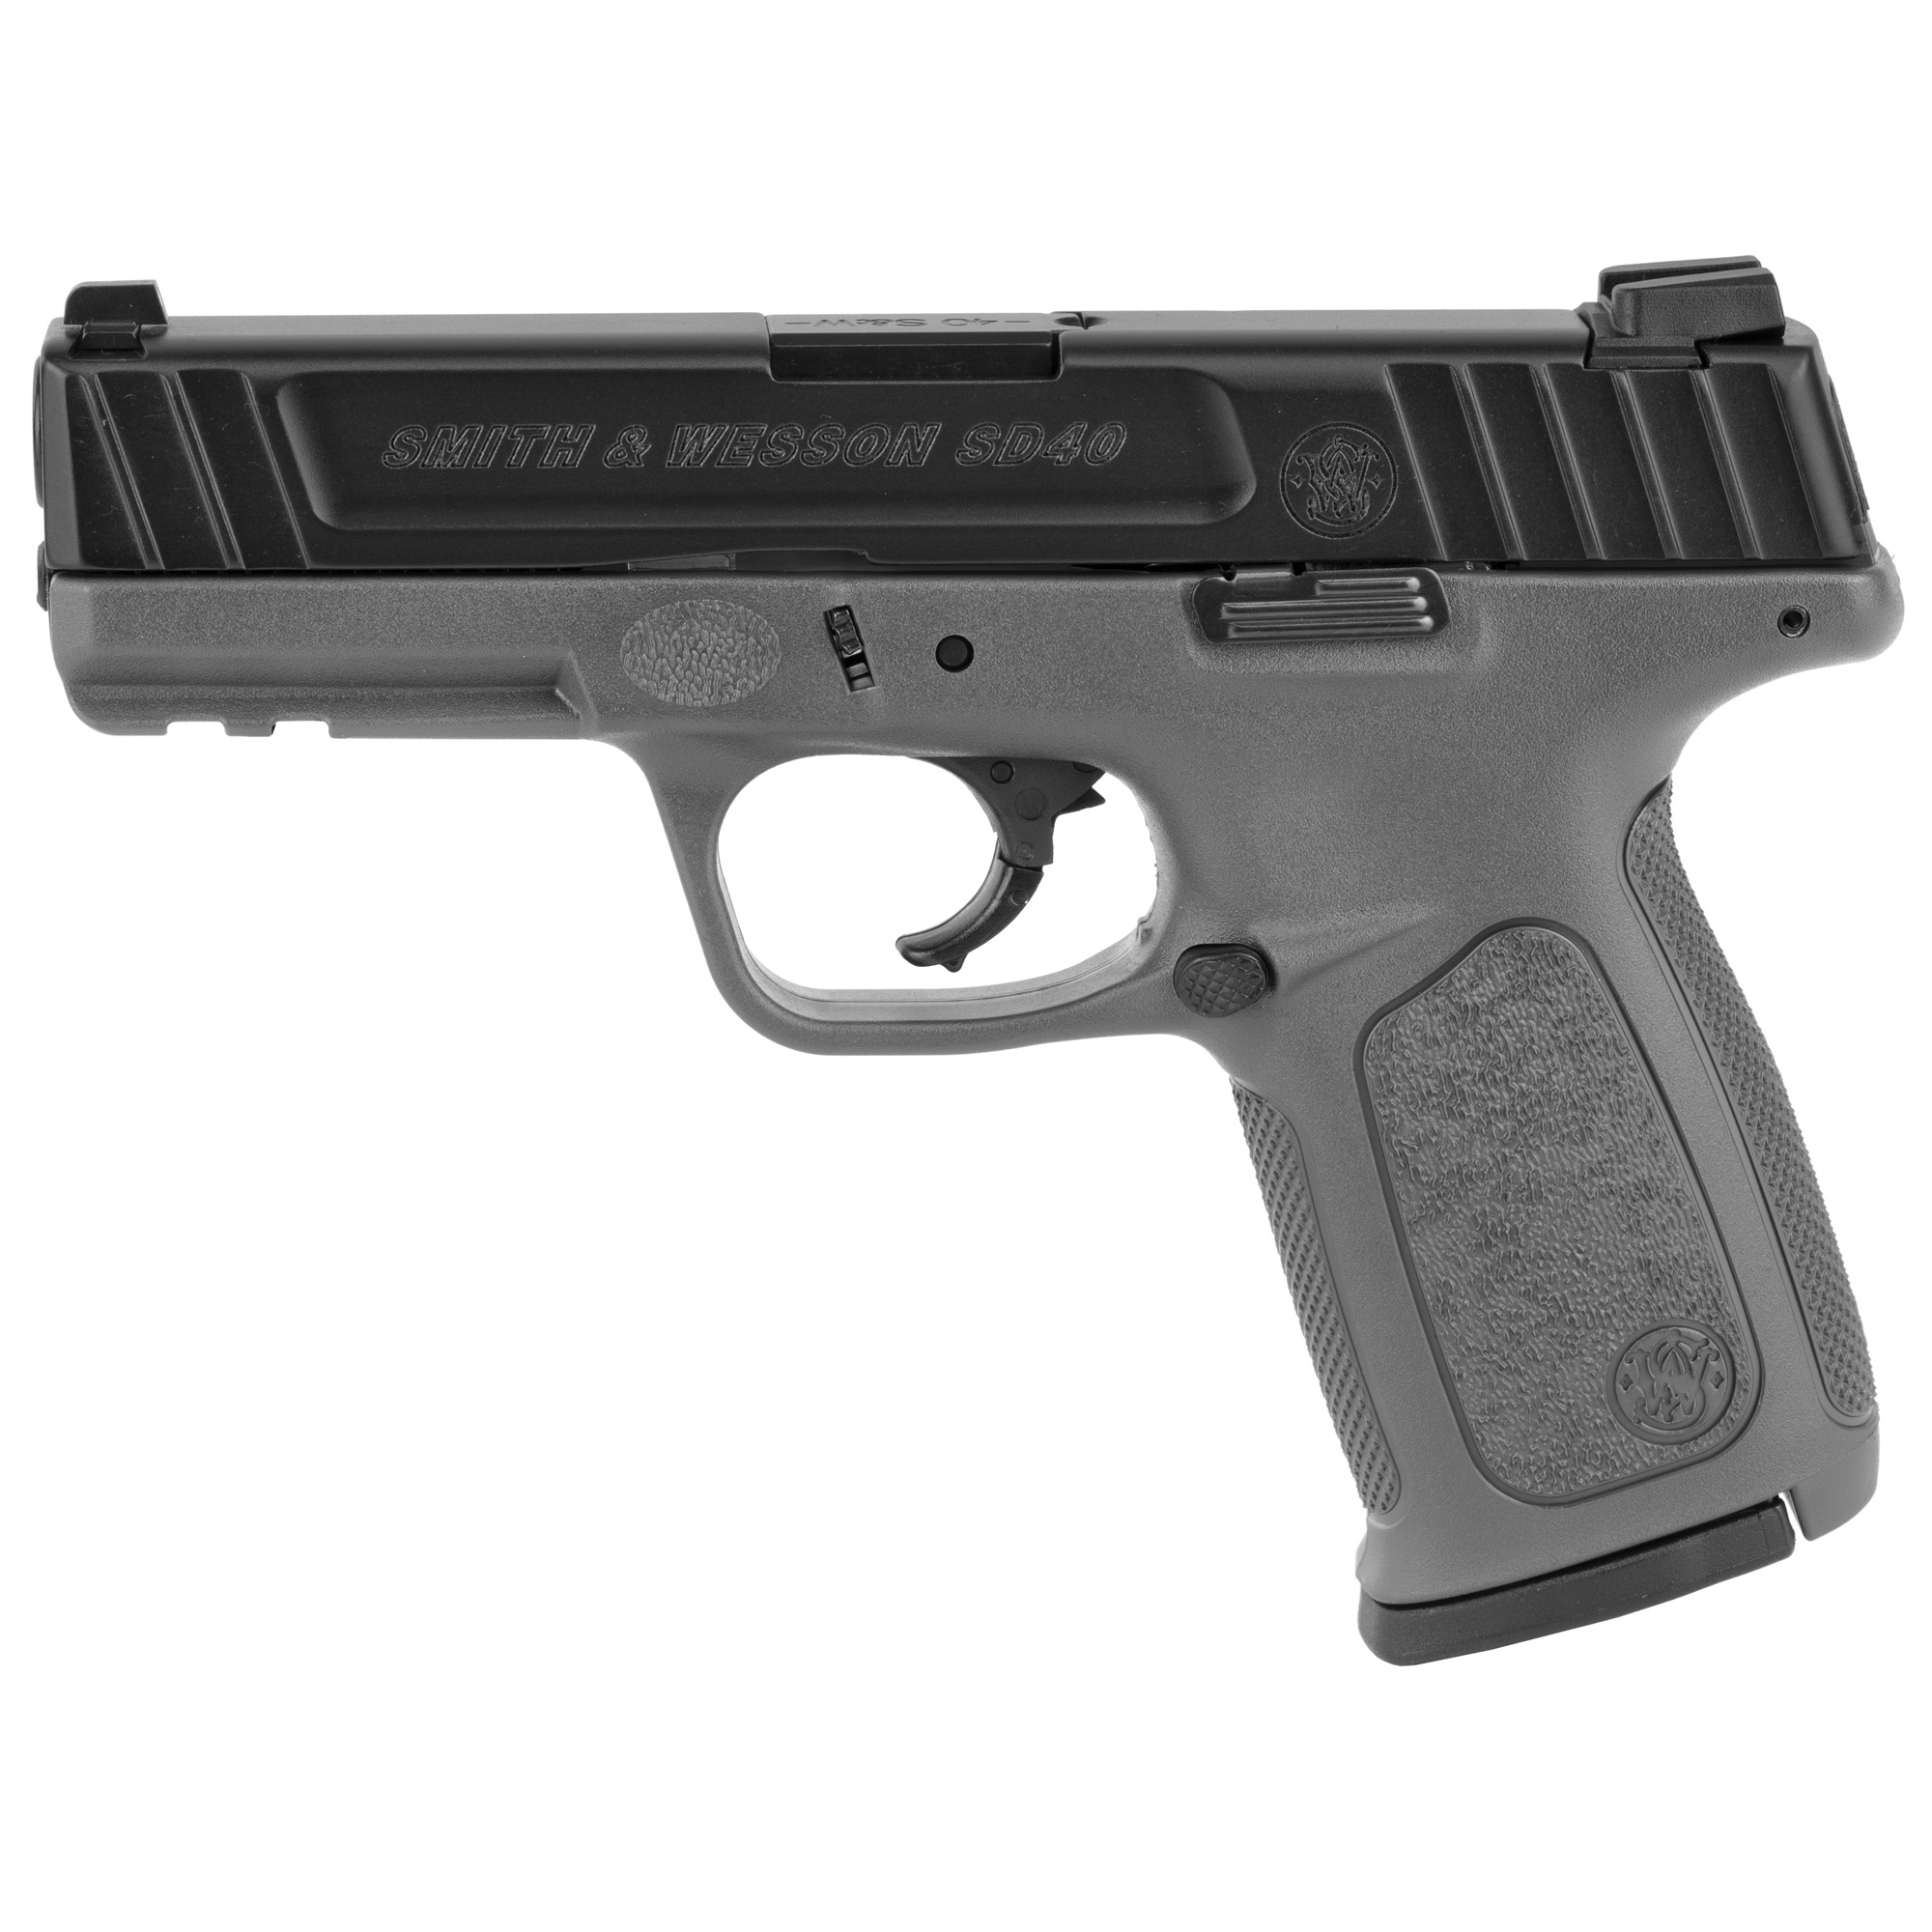 "The Smith & Wesson SD40 semi-automatic pistol offers you an exception value at a price which can't be beat. This particular model features a Stainless Steel slide and barrel with a matte black finish. The frame features a textured grip and is made from high quality polymer. The slide is adorned with a set of fixed 3 dot sights"" and the frame allows of the mounting of various accessories via the accessory rail. This two tone black slide and grey frame is a nice variation from the standard black. Includes two 14-round magazines."